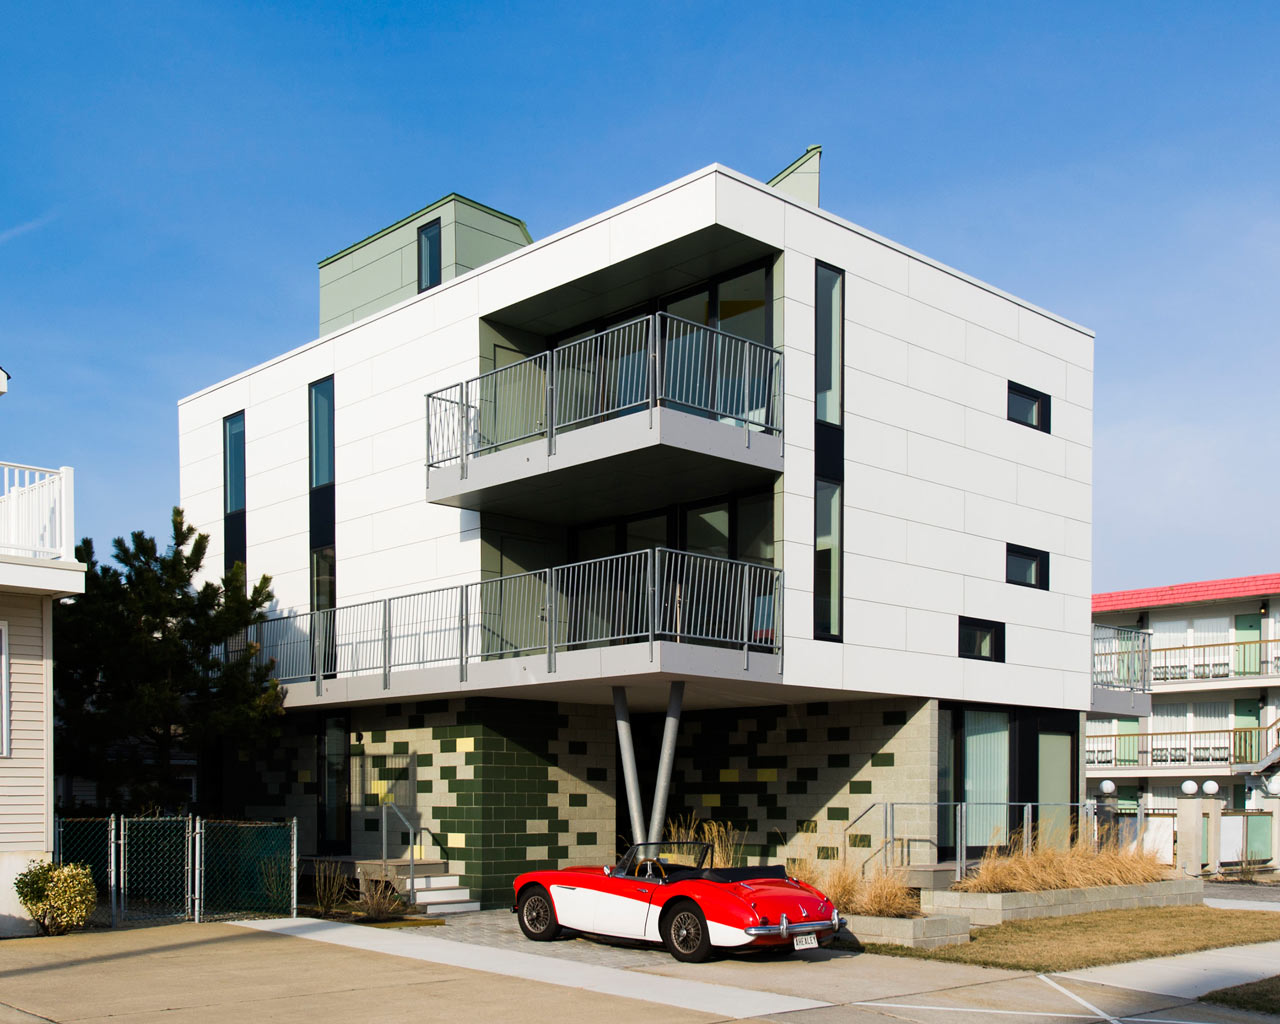 Motel-Inspired Vacation Home at the Jersey Shore